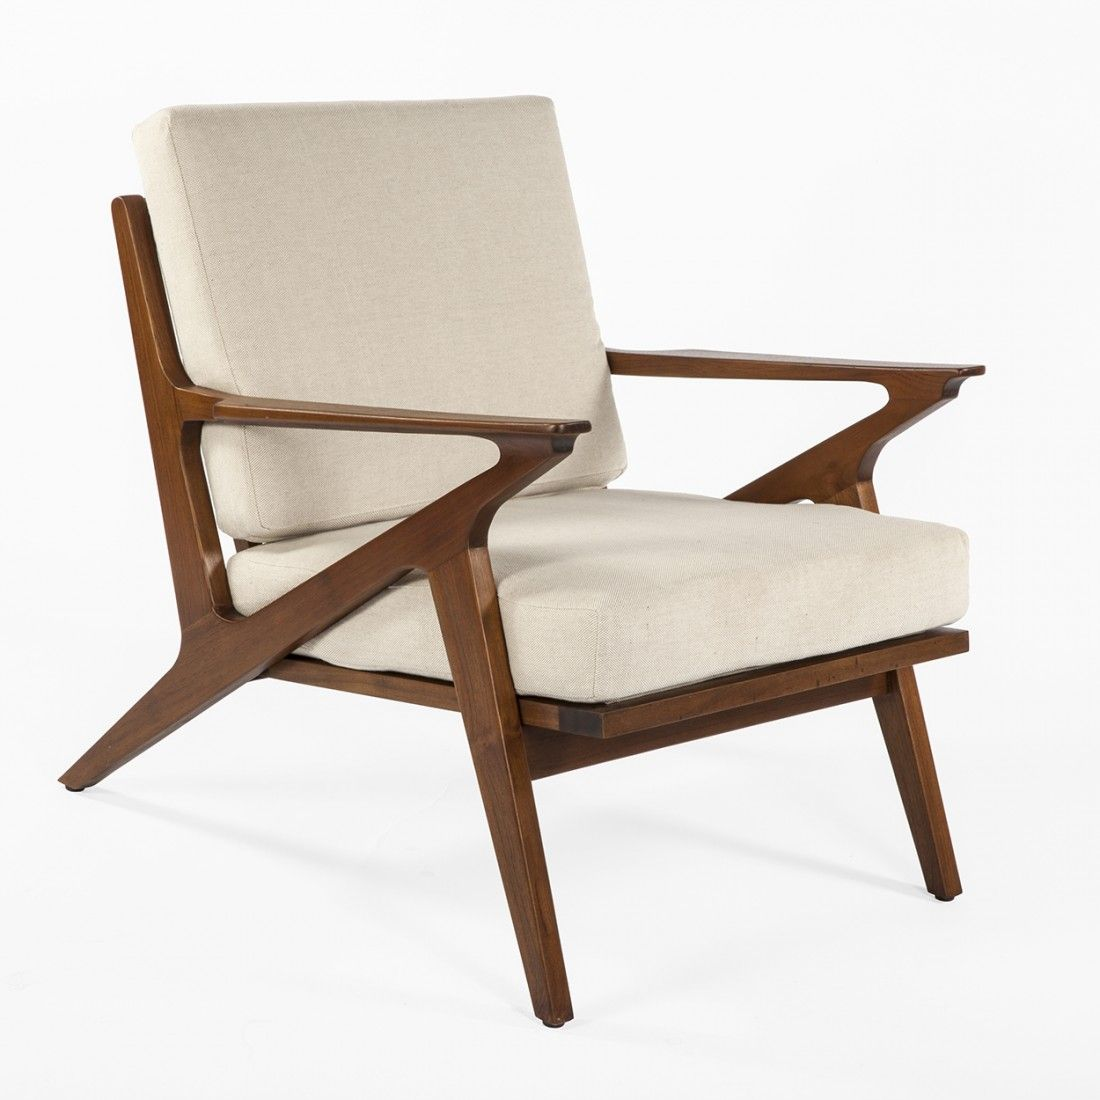 Mid century modern furniture reproductions - Mid Century Replica Mid Century Poul Jensen Z Lounge Chair With Teak Finish Beige